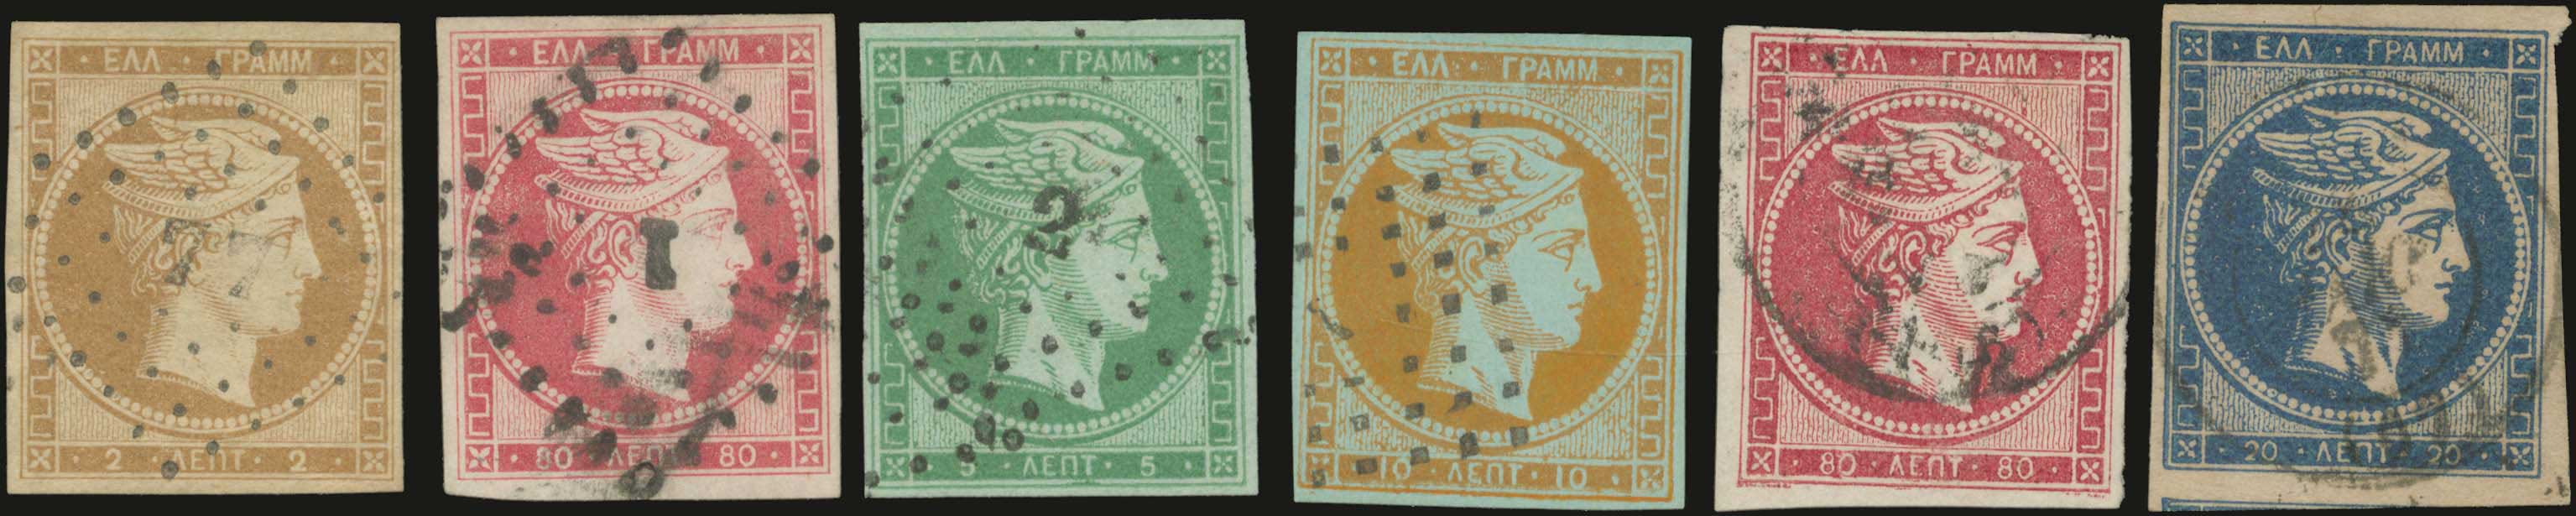 Lot 2 - -  LARGE HERMES HEAD large hermes head -  A. Karamitsos Public Auction 643 General Stamp Sale